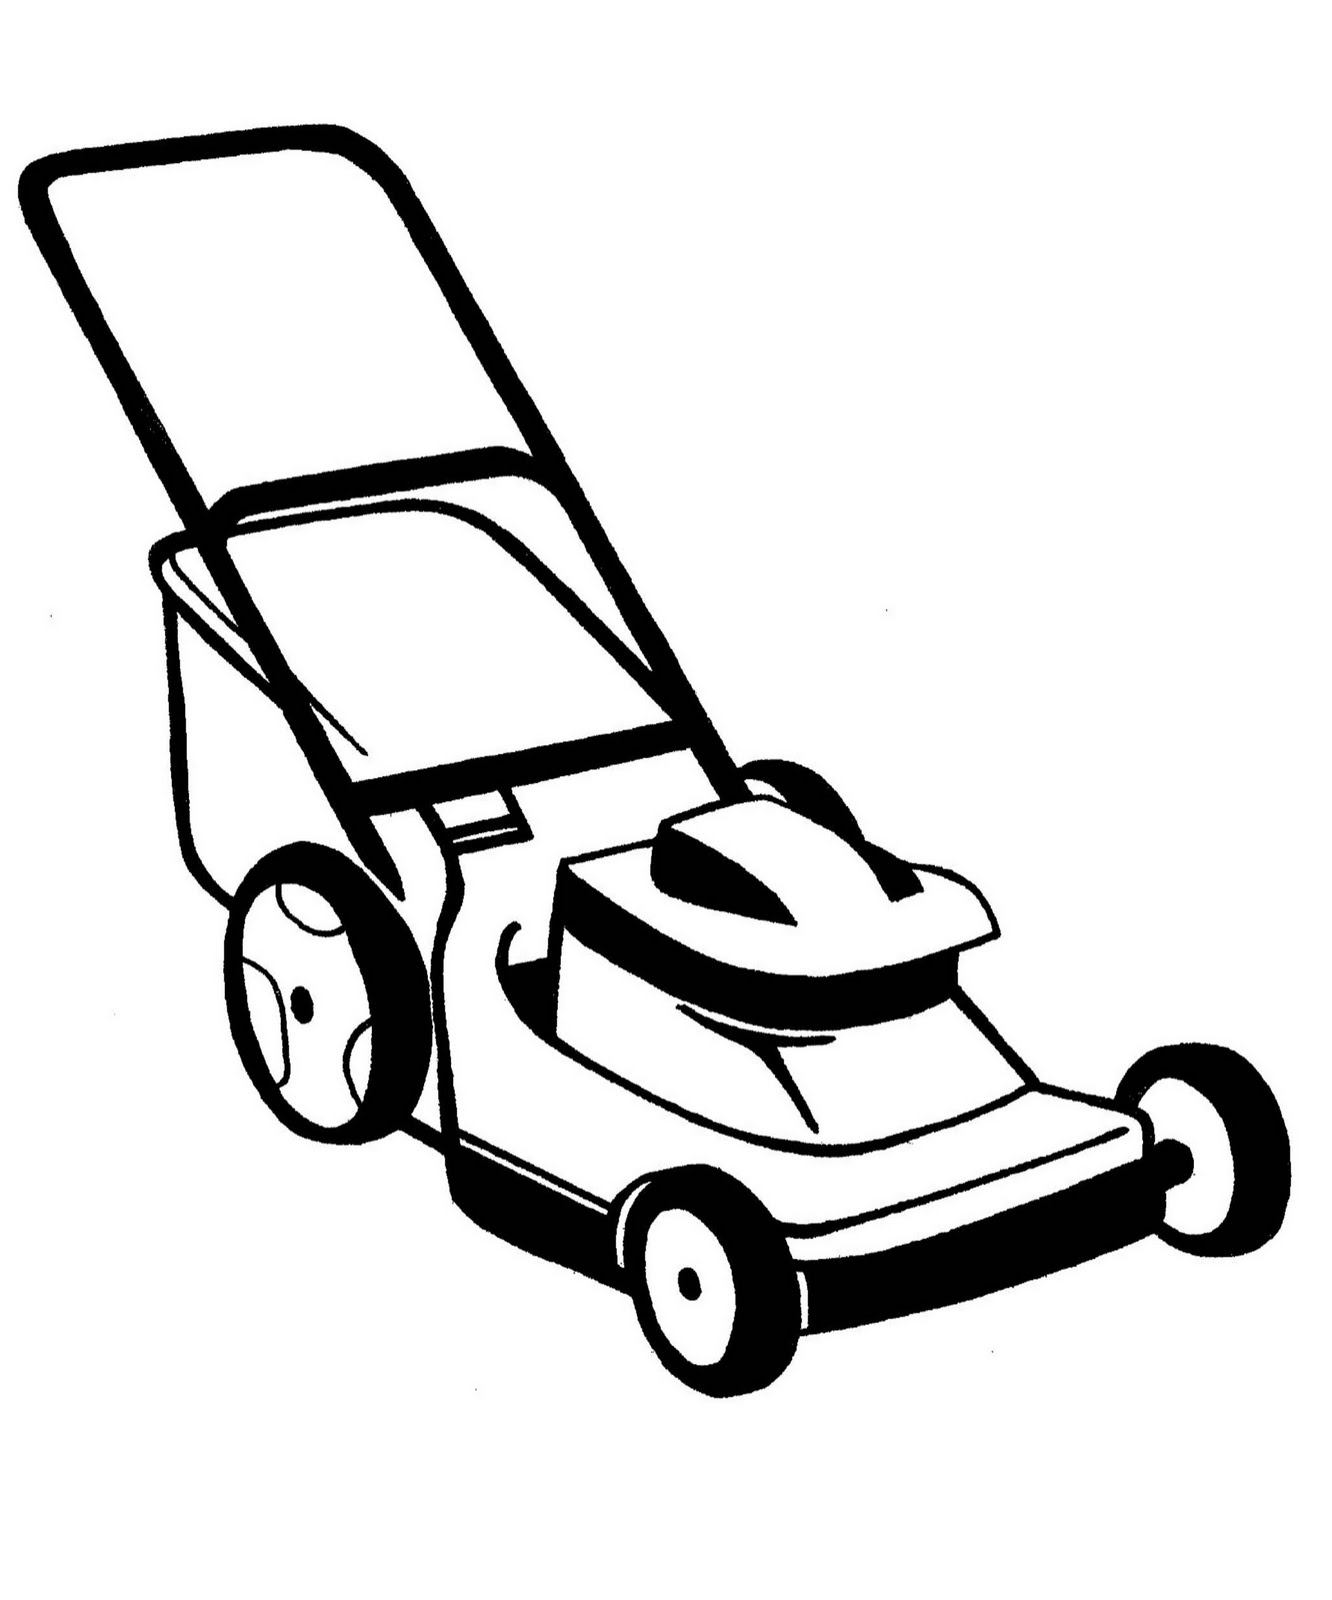 png black and white Lawnmower clipart.  clip art clipartlook.